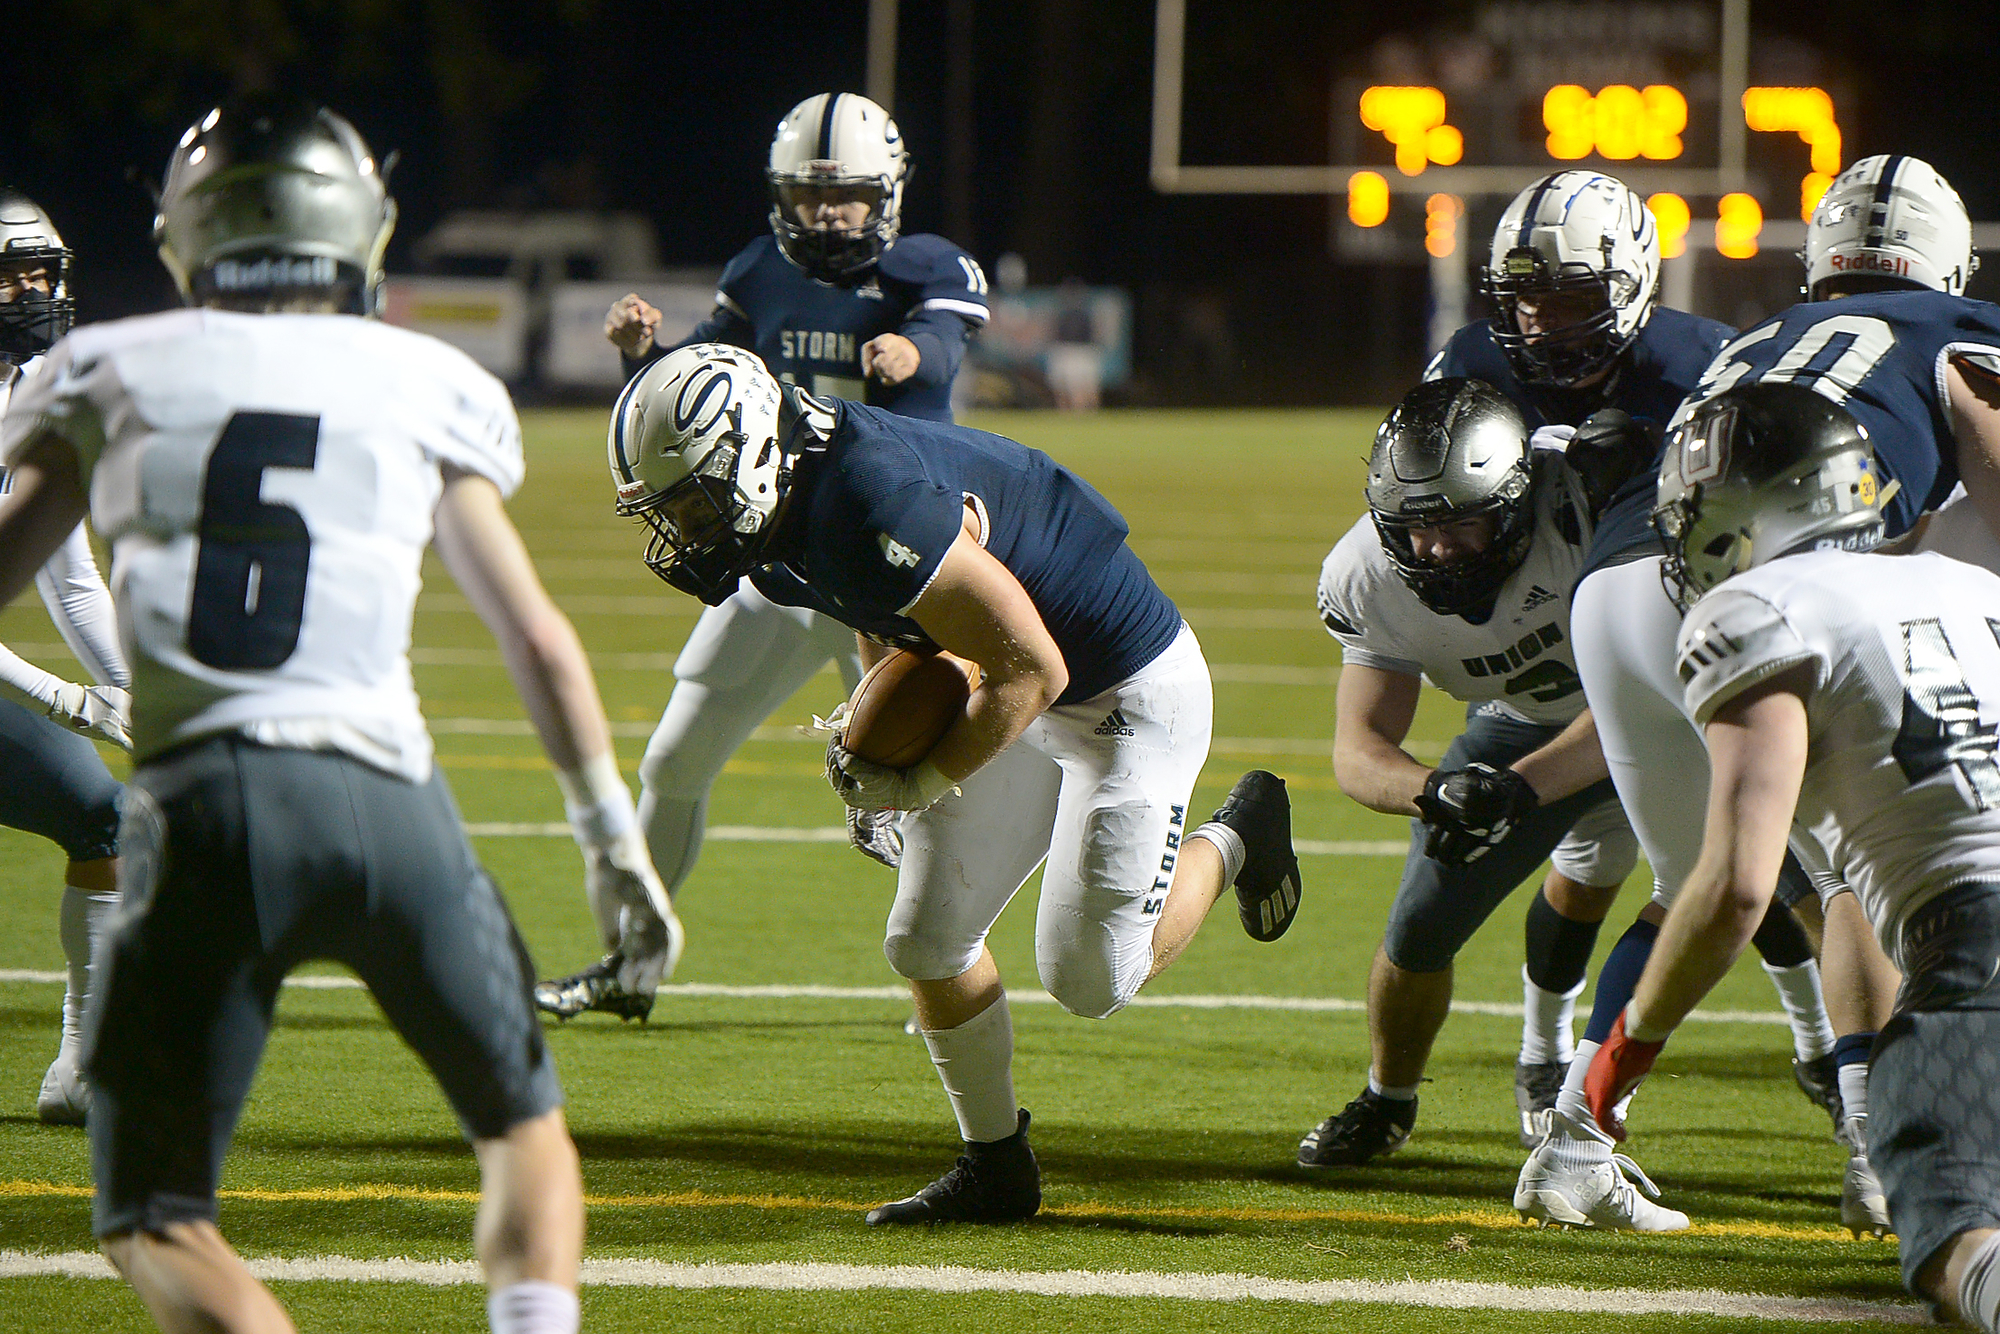 Skyview's Gabe Martin scores a touchdown against Union at Kiggins Bowl on Friday night, March 12, 2021.